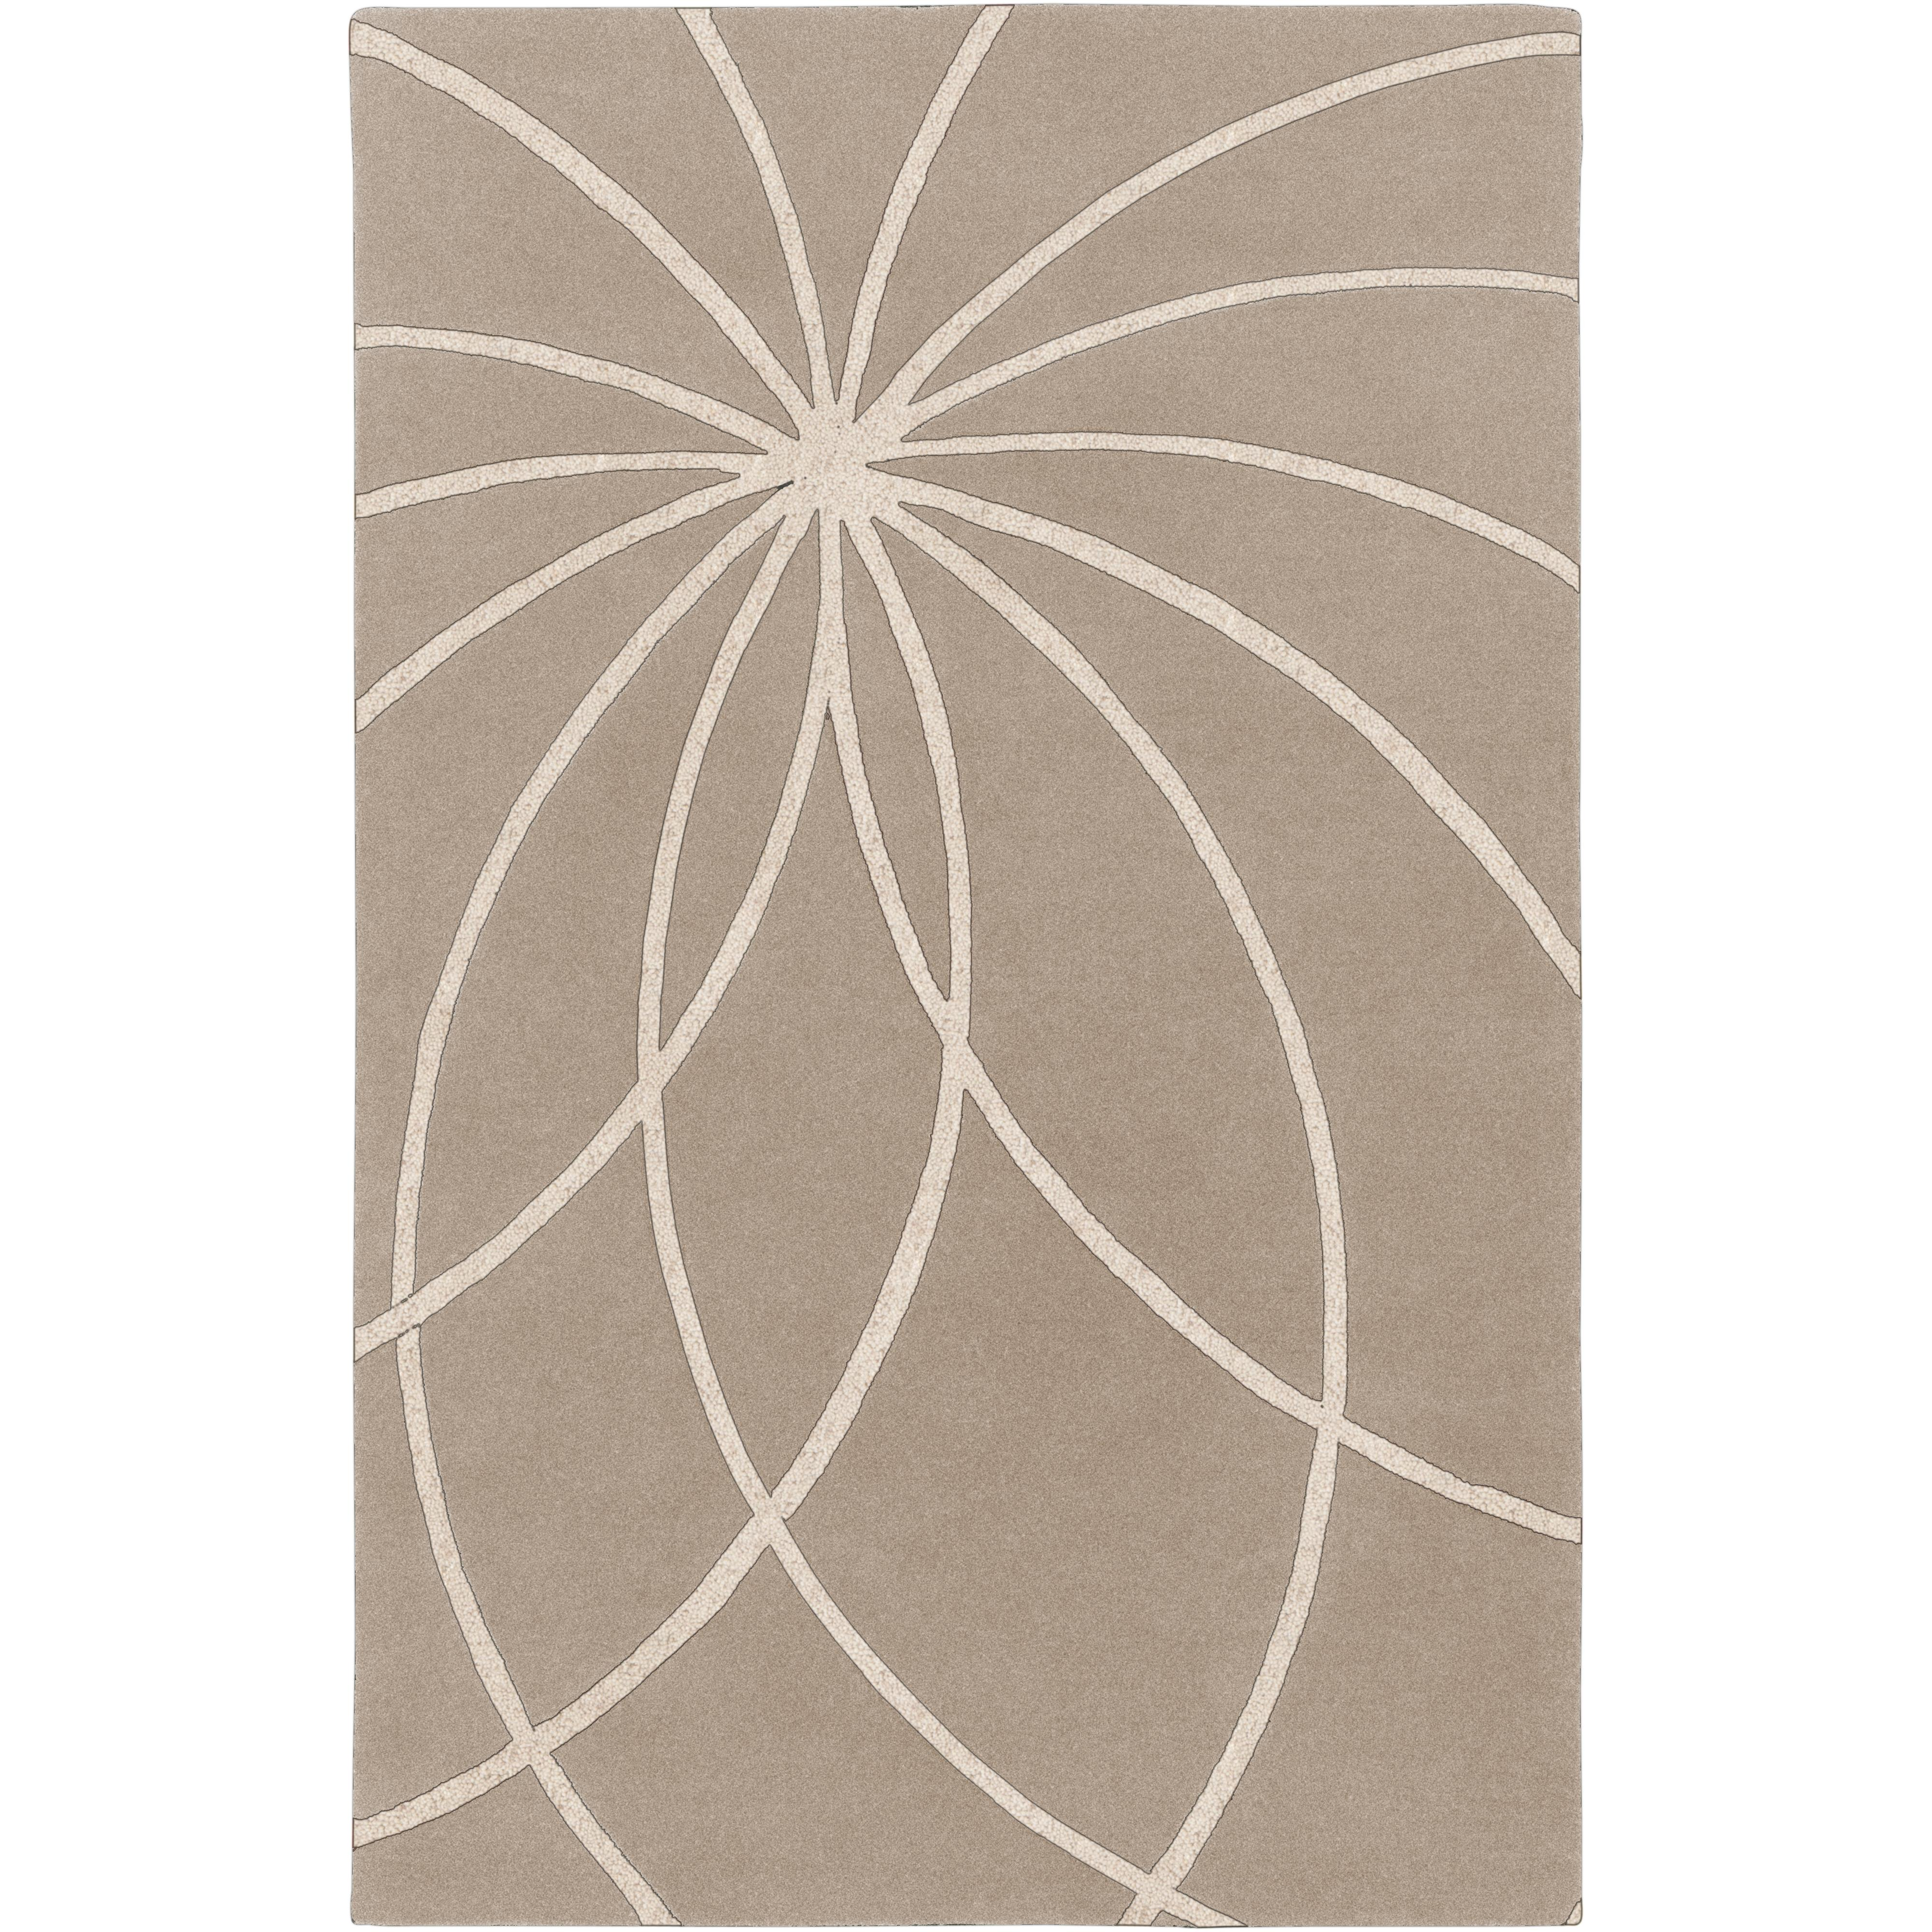 Surya Rugs Forum 2' x 3' - Item Number: FM7185-23